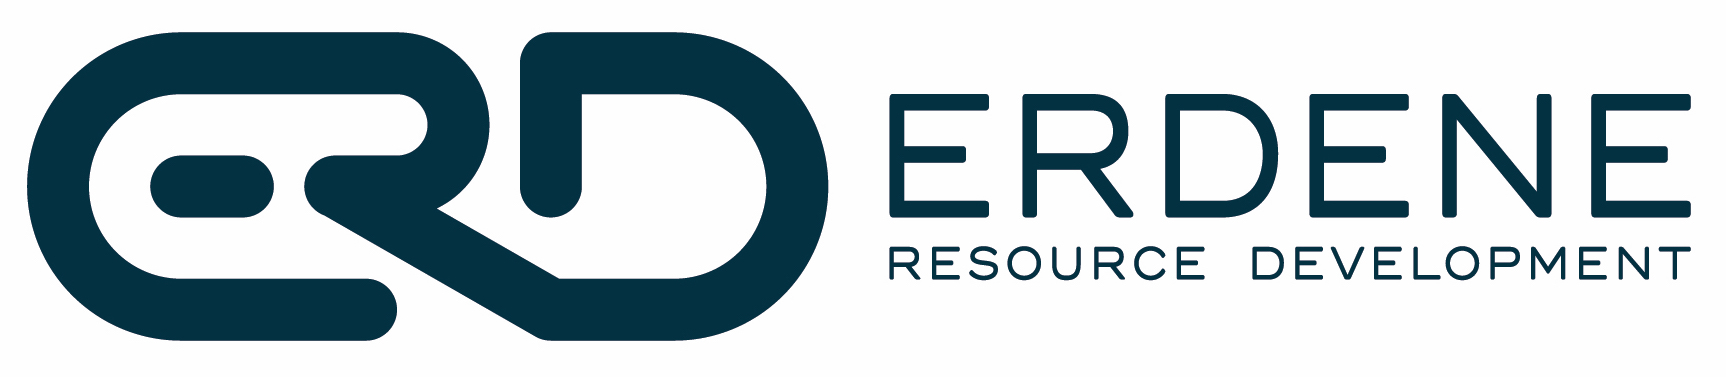 Erdene Executes Project Finance Mandate Letter With Export Development Canada for Bayan Khundii Gold Project